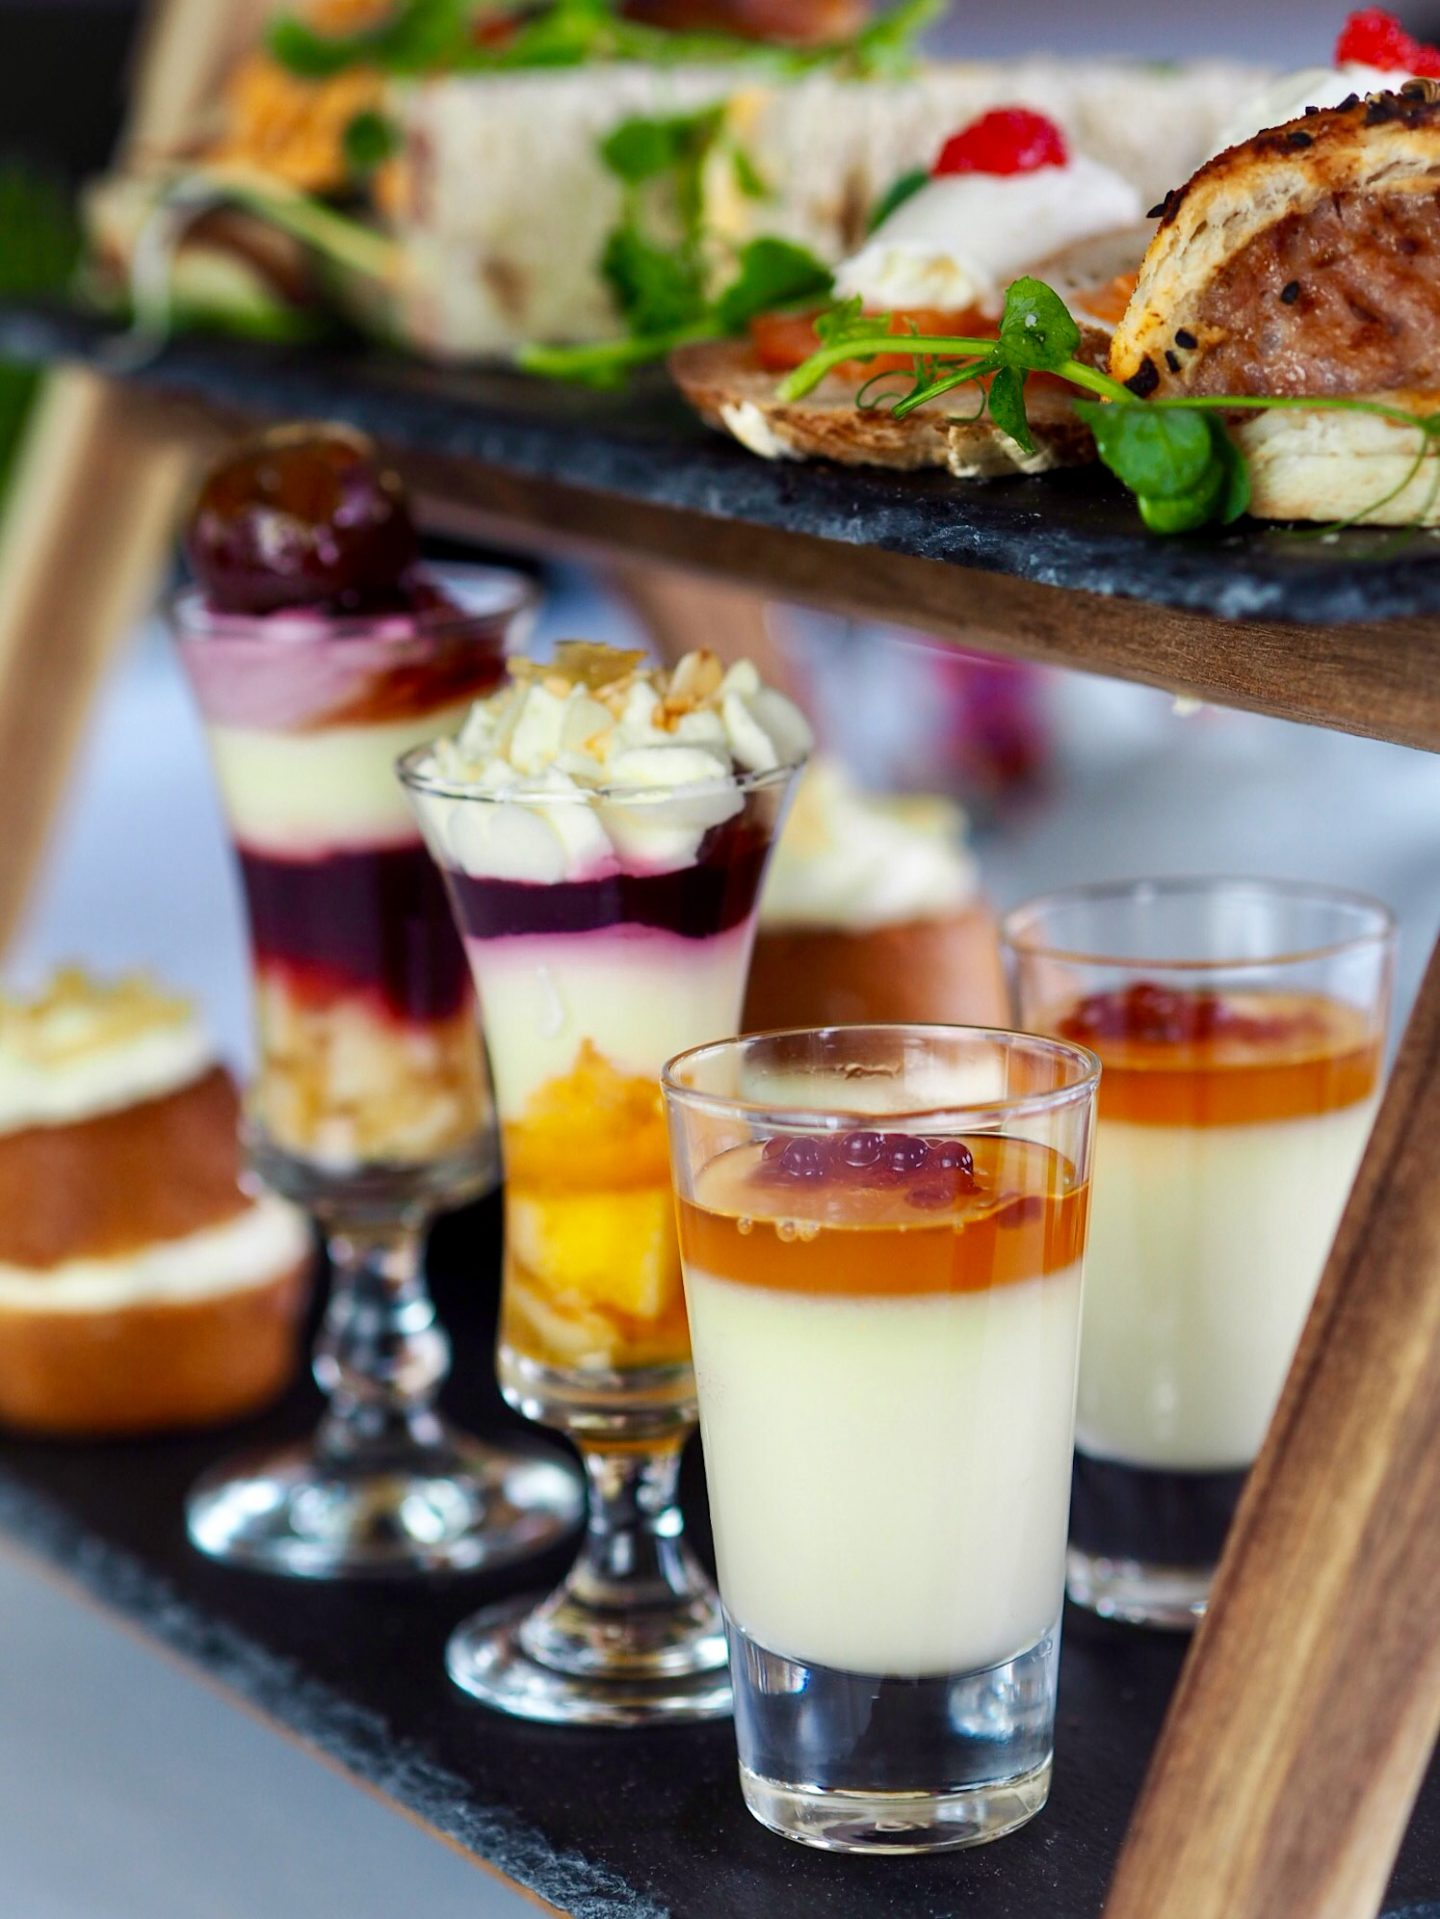 Improve your photography food picture